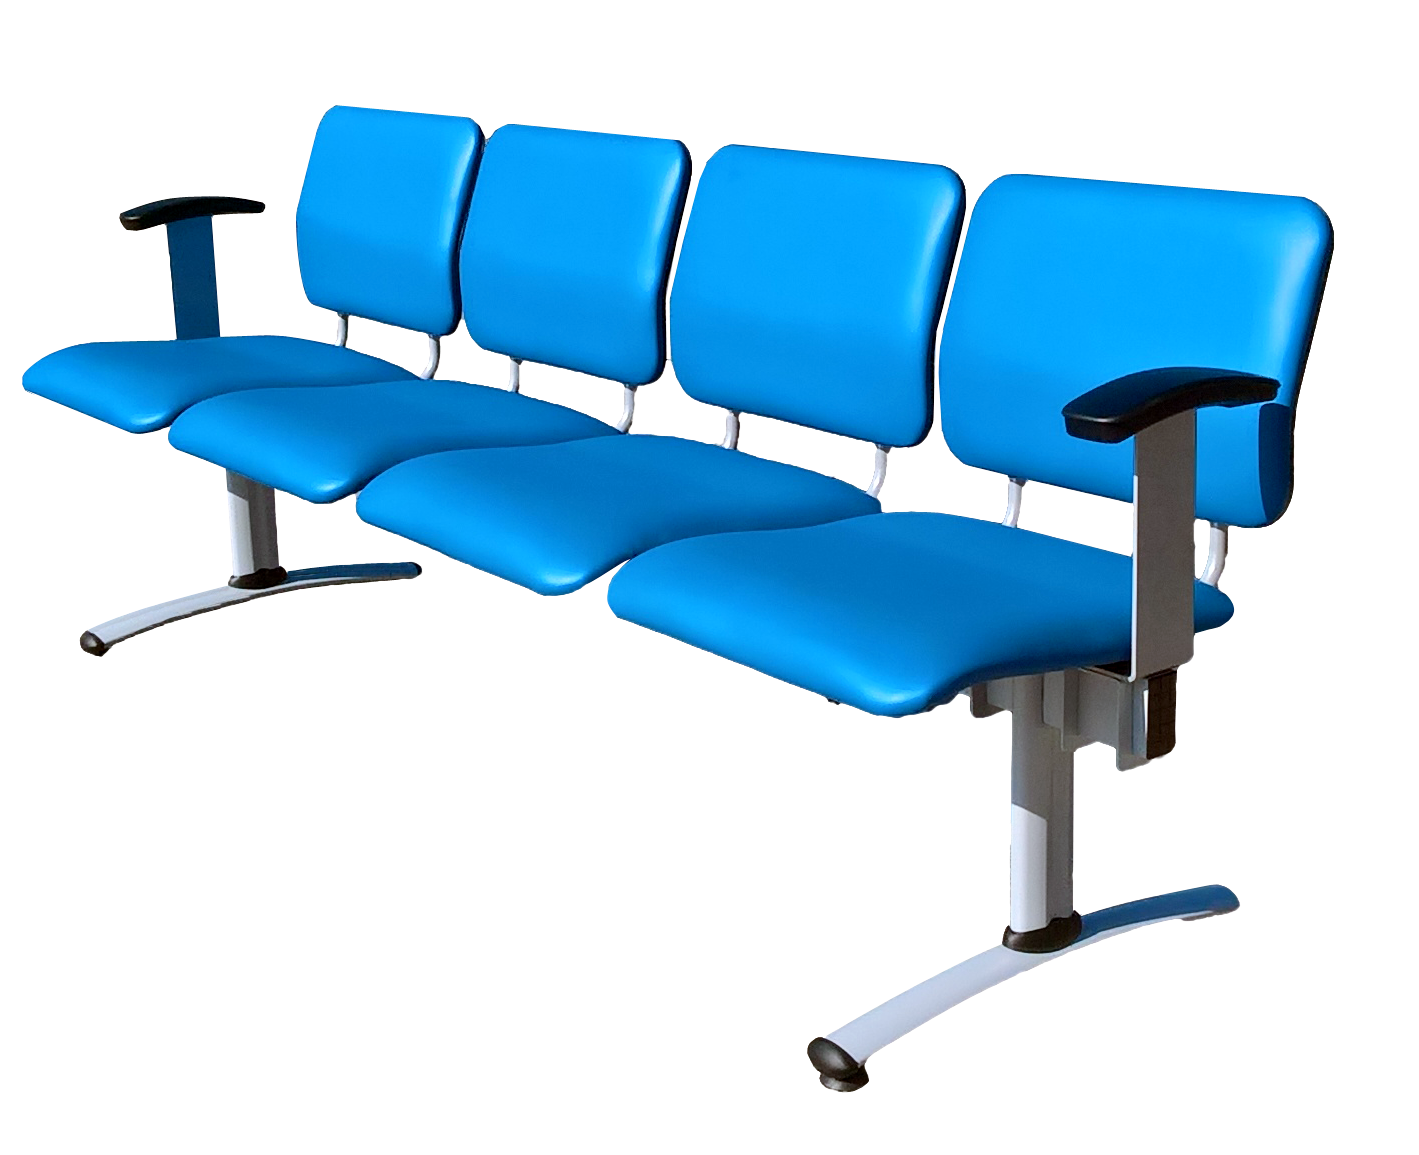 Waiting room 4-seat beam seating upholstered in blue vinyl with end arms